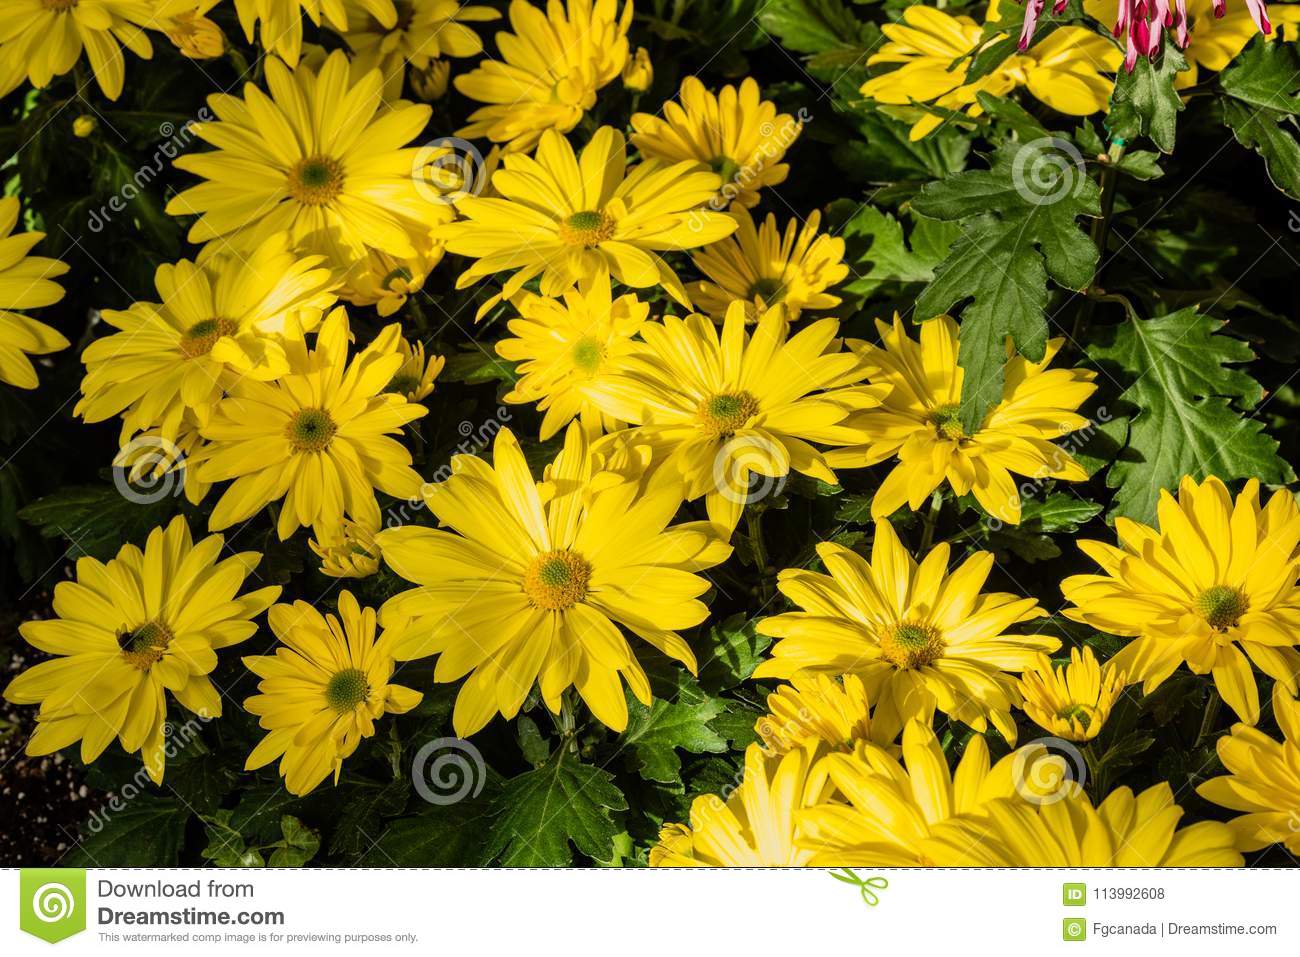 Yellow mums flowers stock photo image of background 113992608 download yellow mums flowers stock photo image of background 113992608 mightylinksfo